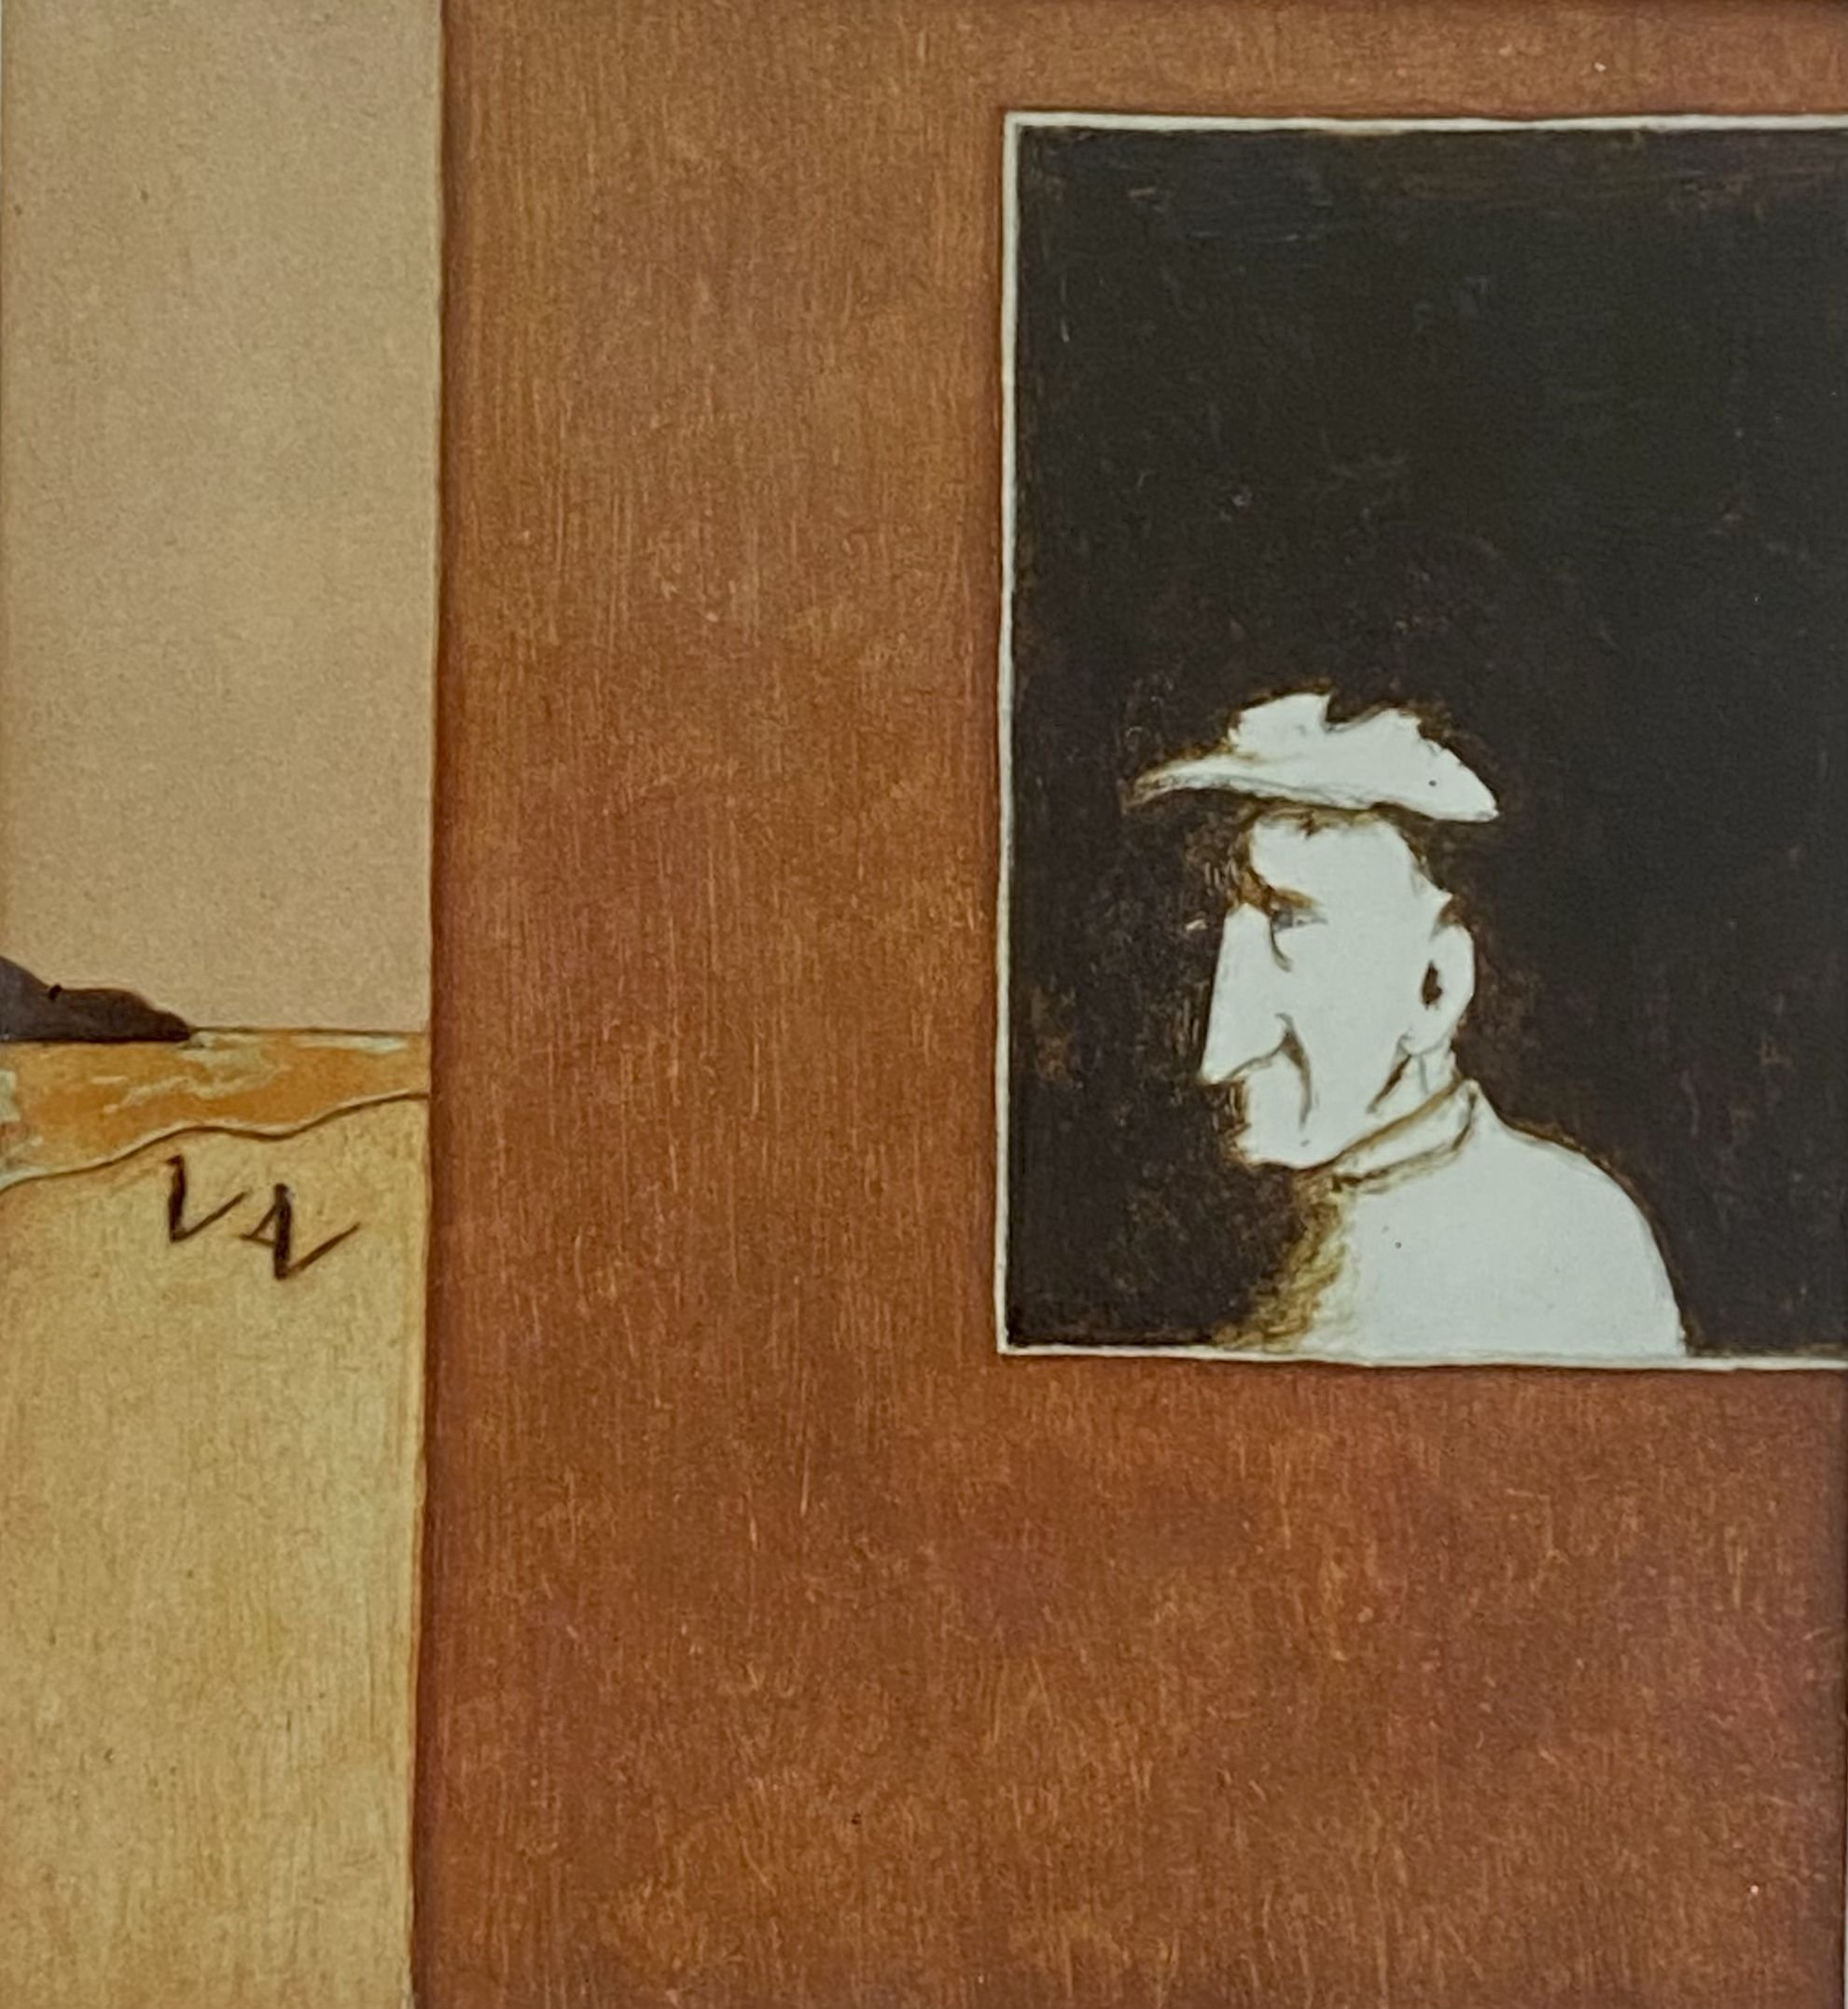 Alfred Wallis Noticing Ben Nicolson And Christopher Wood Half-an-Hour Before Their Discovery of Him